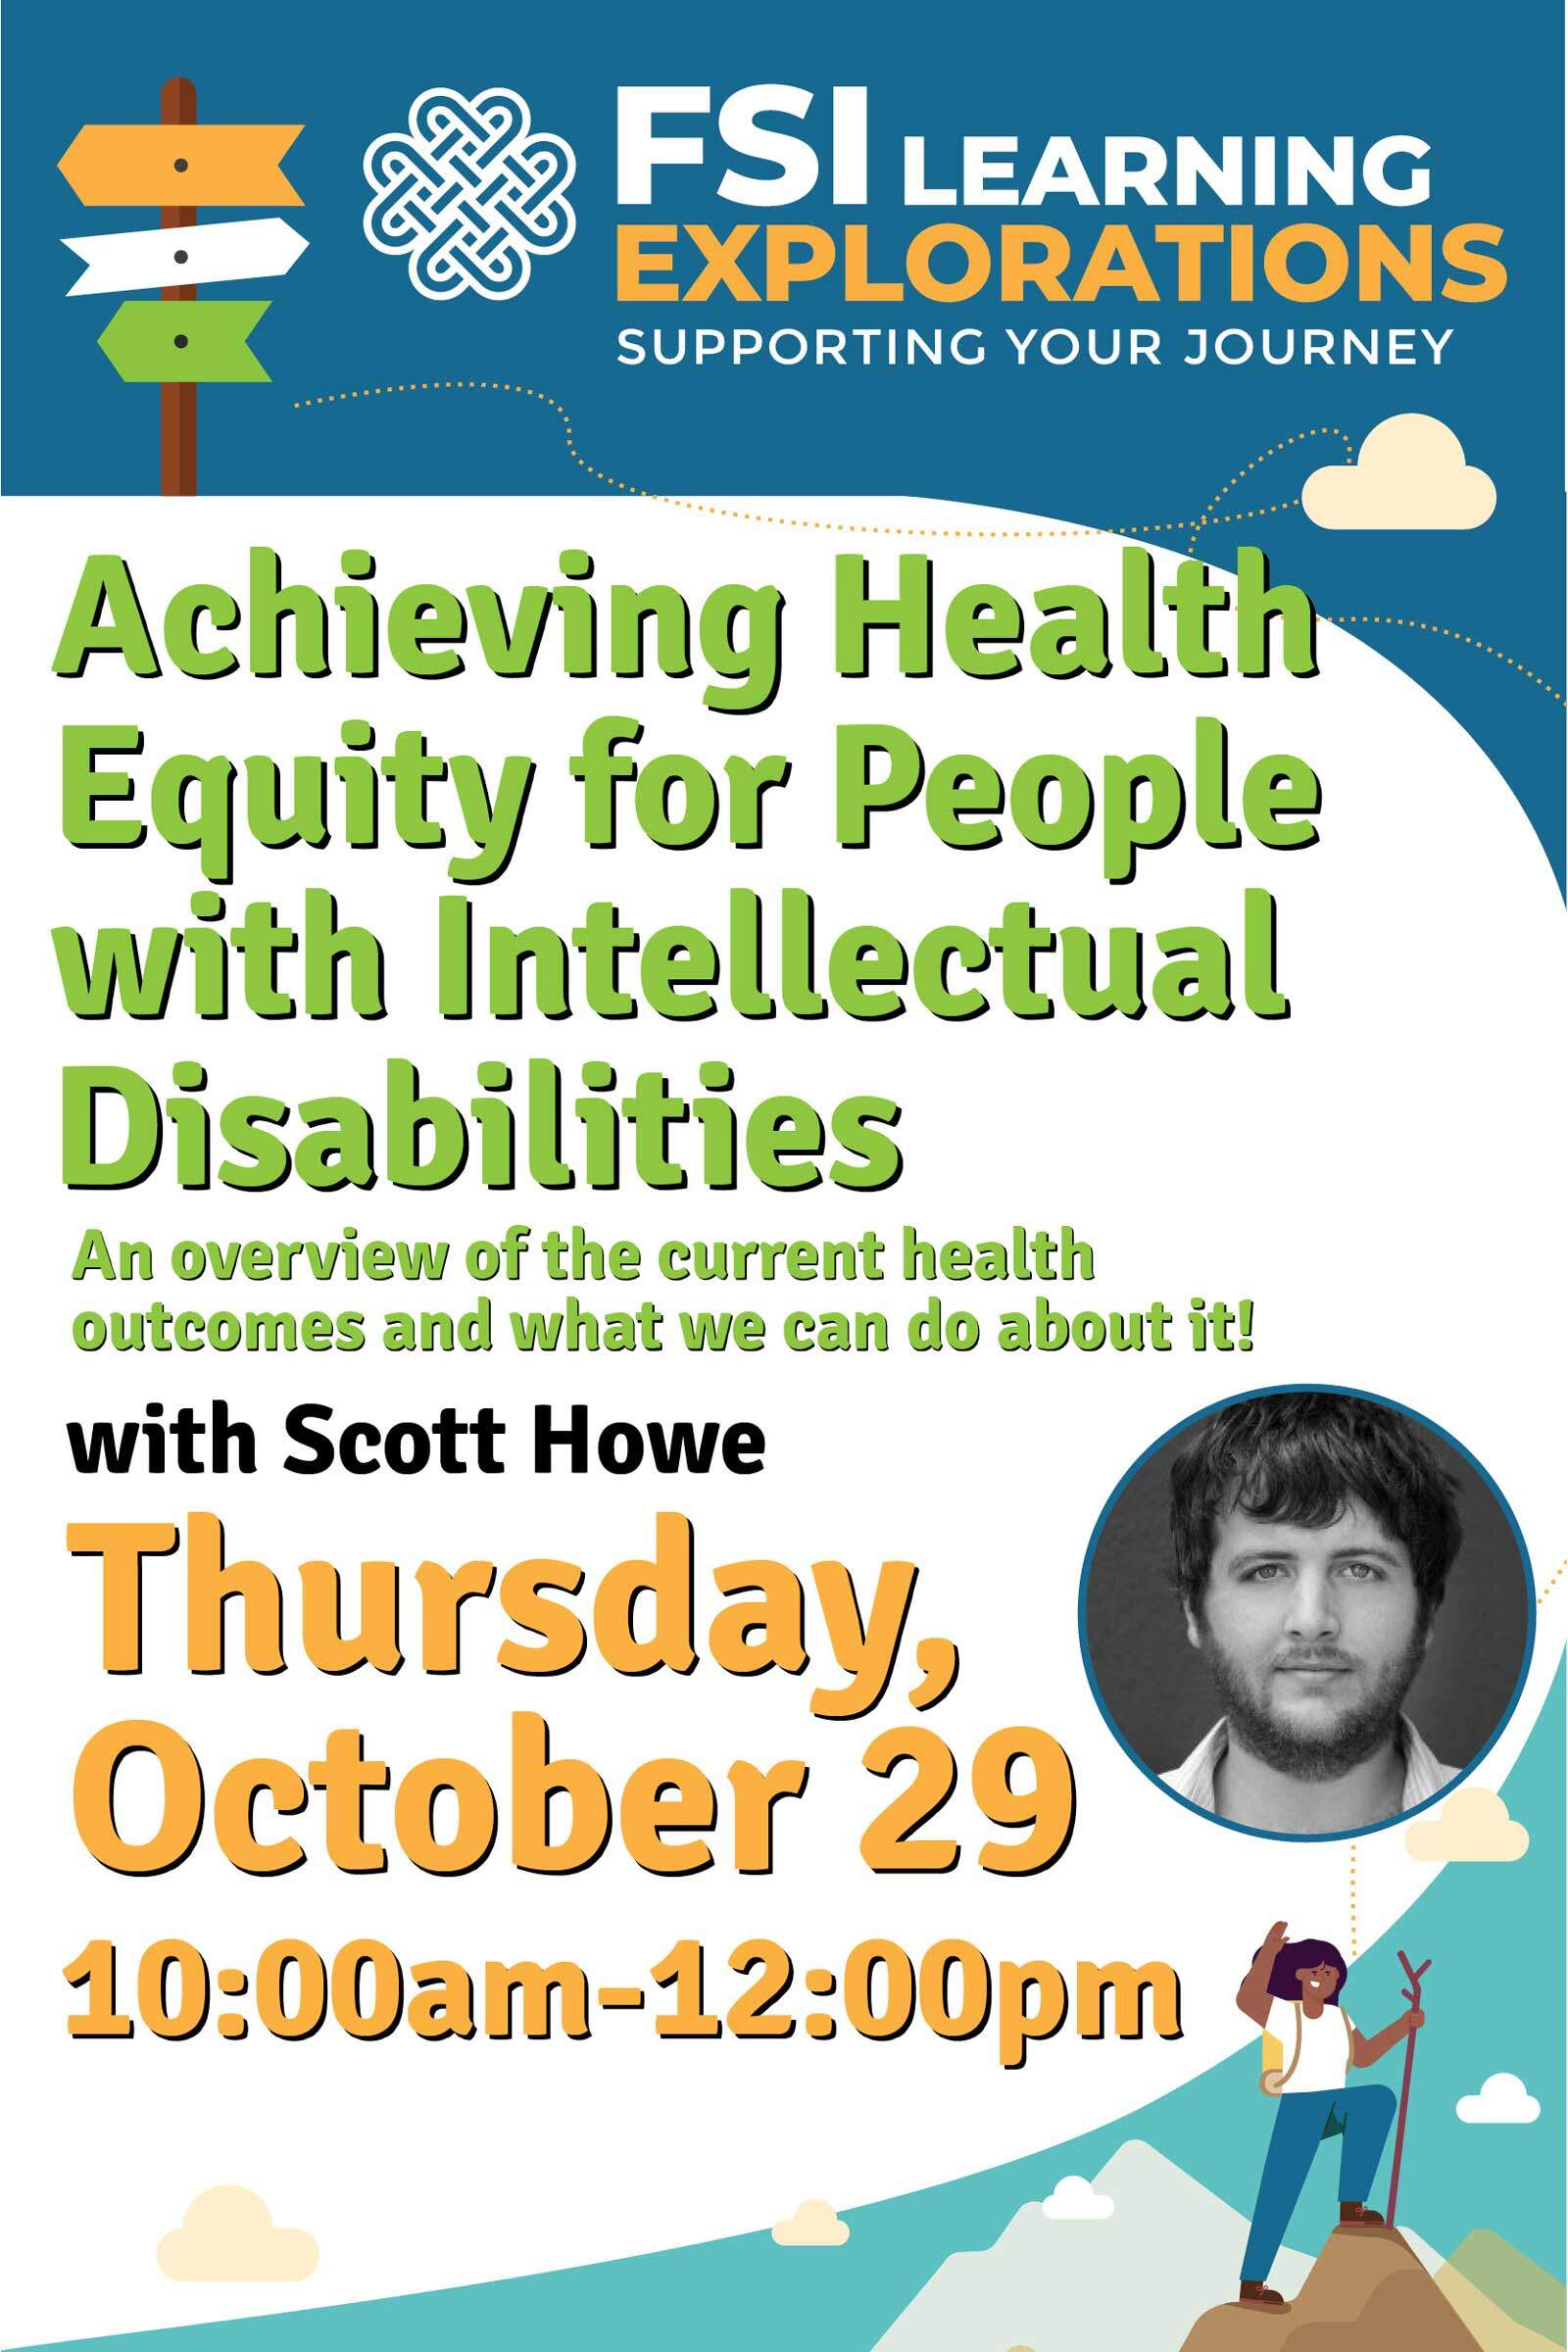 FSI Learning Explorations - Achieving Health Equity for People with Intellectual Disabilities - An overview of the current health outcomes and what we can do about it!